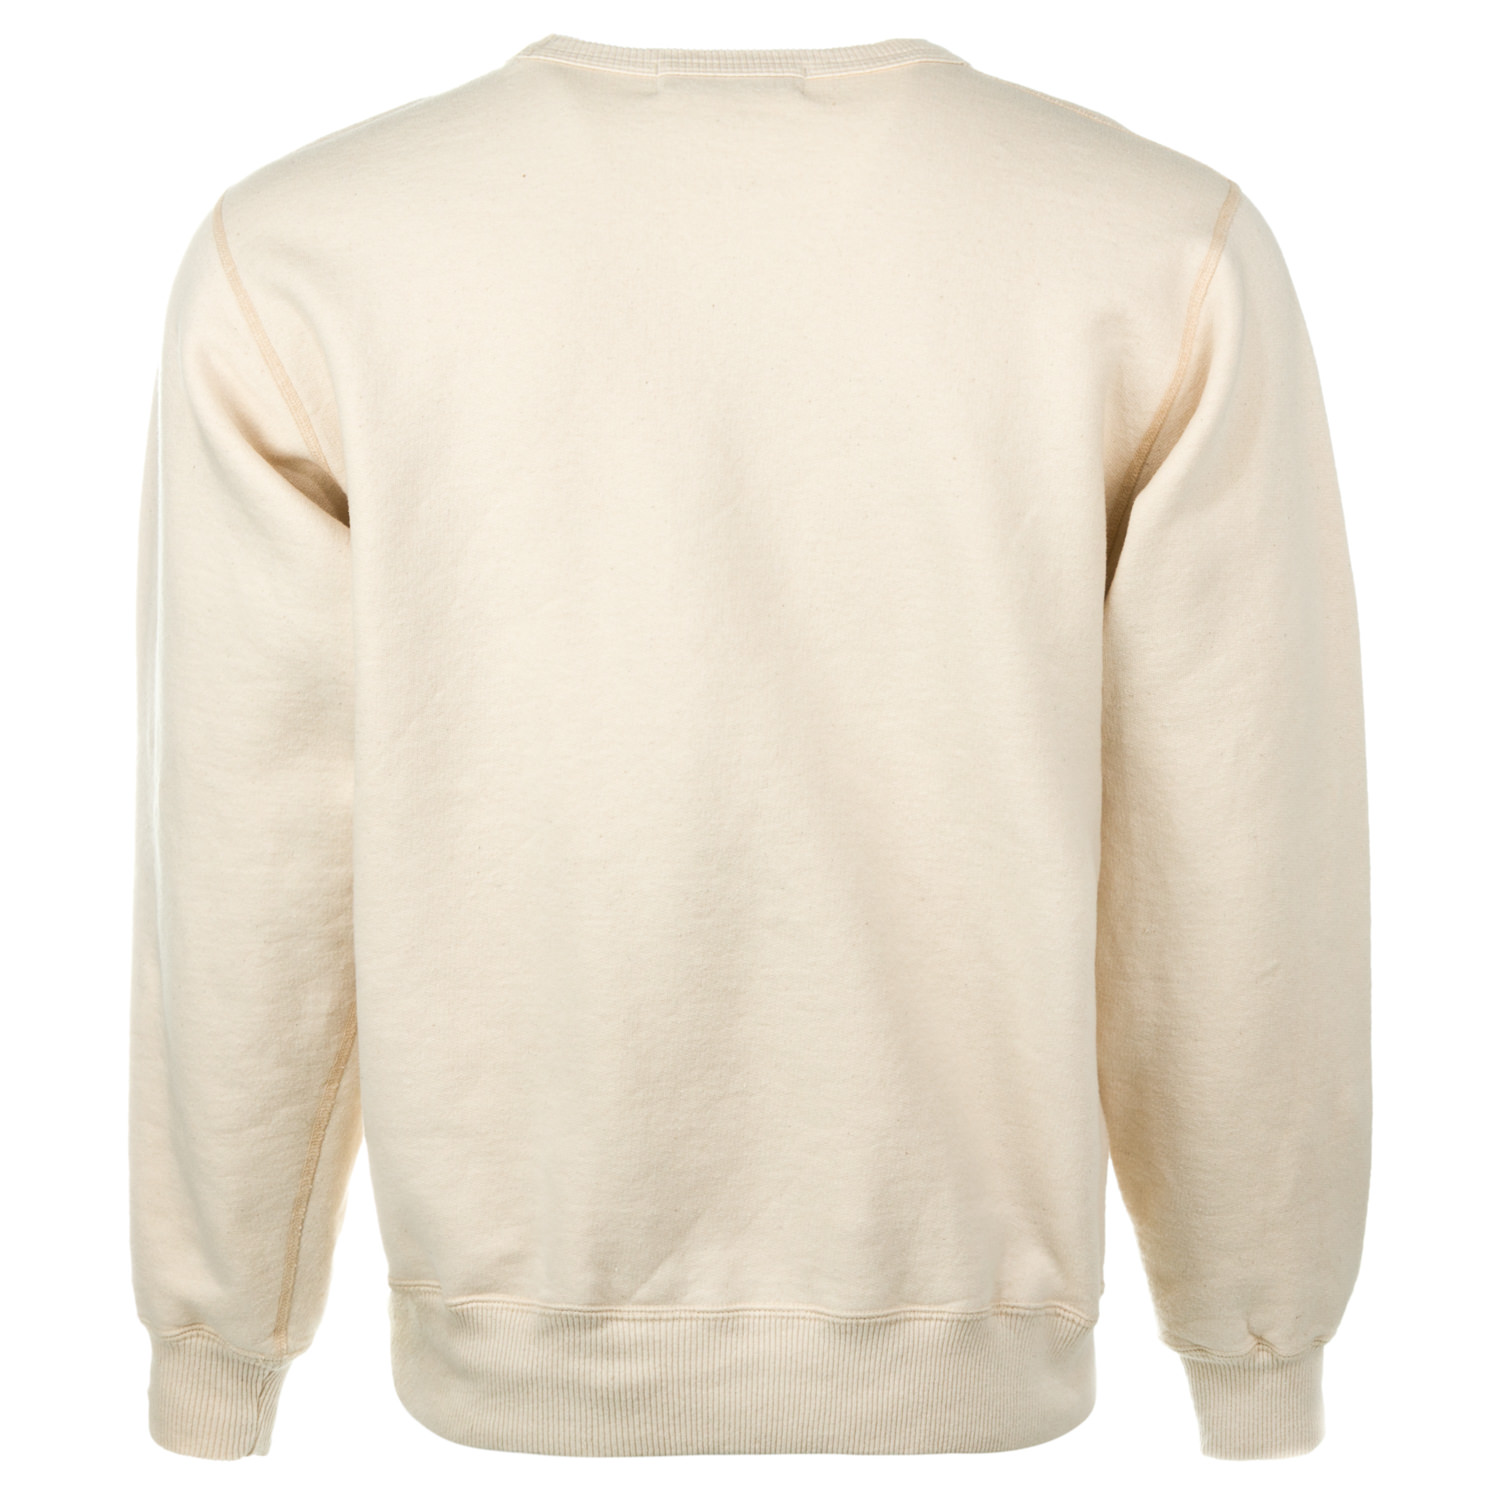 38cb3225f00 Crewneck Natural 100% Cotton. Hover to zoom. move mouse over image to  magnify